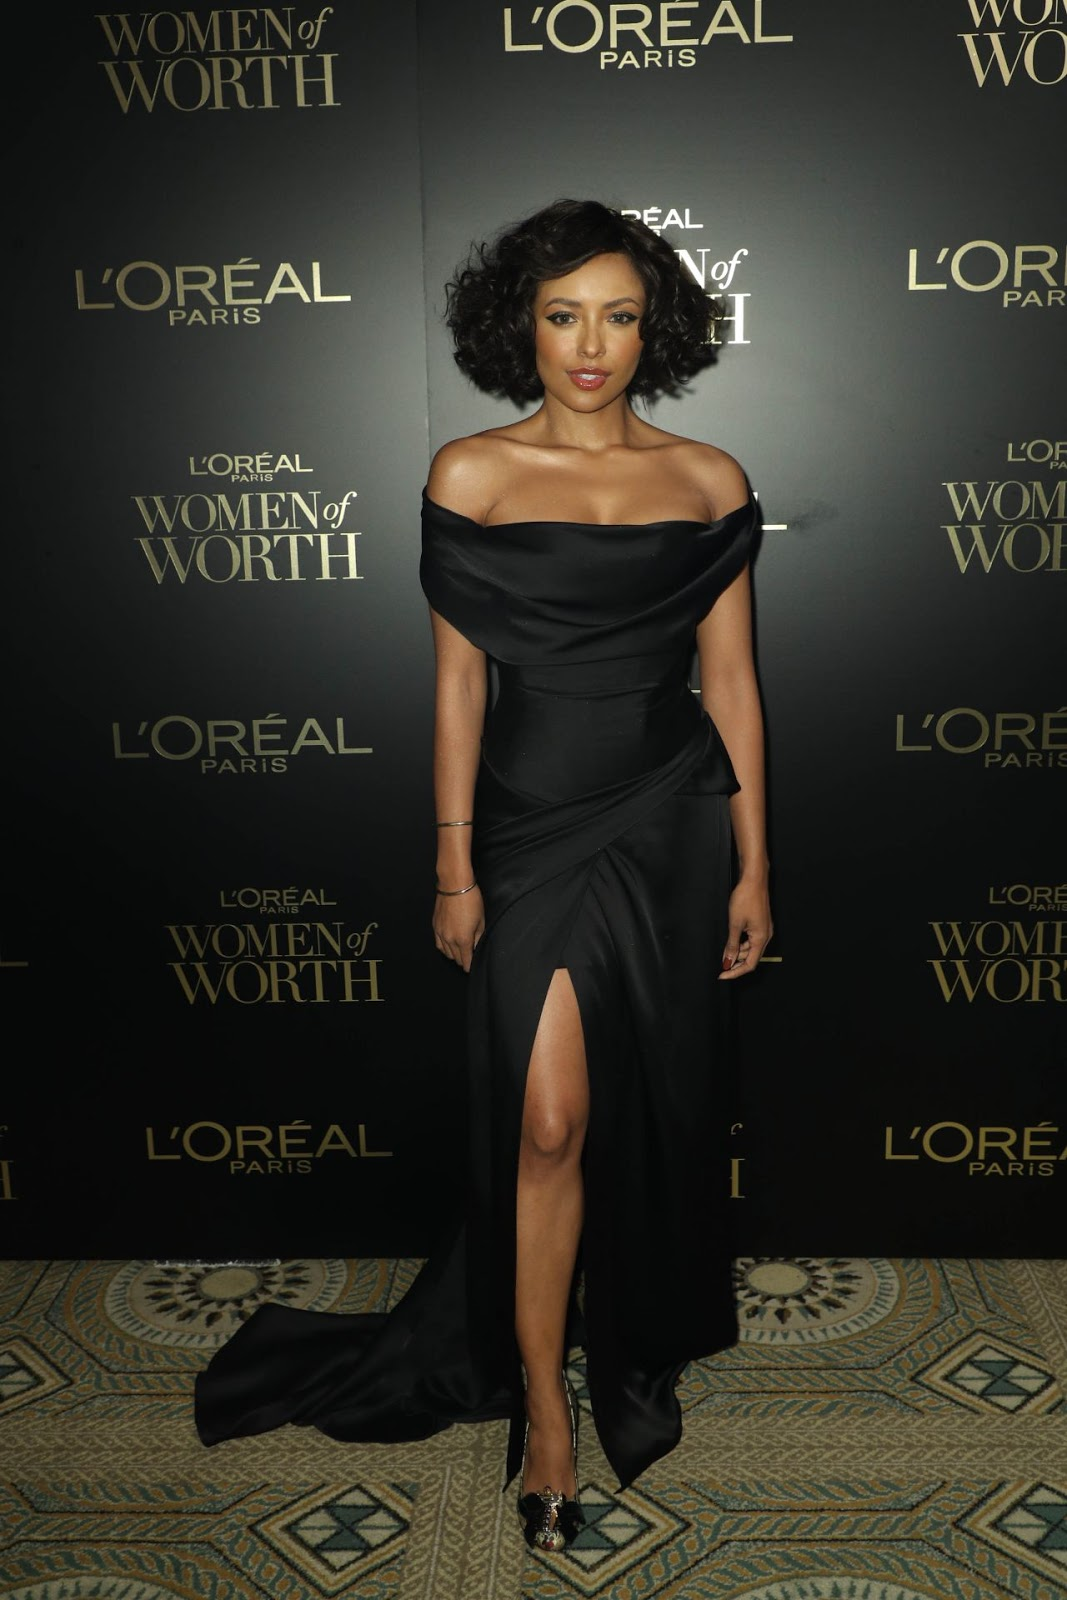 Kat Graham goes glam in off-shoulder dress at the L'Oreal Women of Worth Awards 2019 in NYC